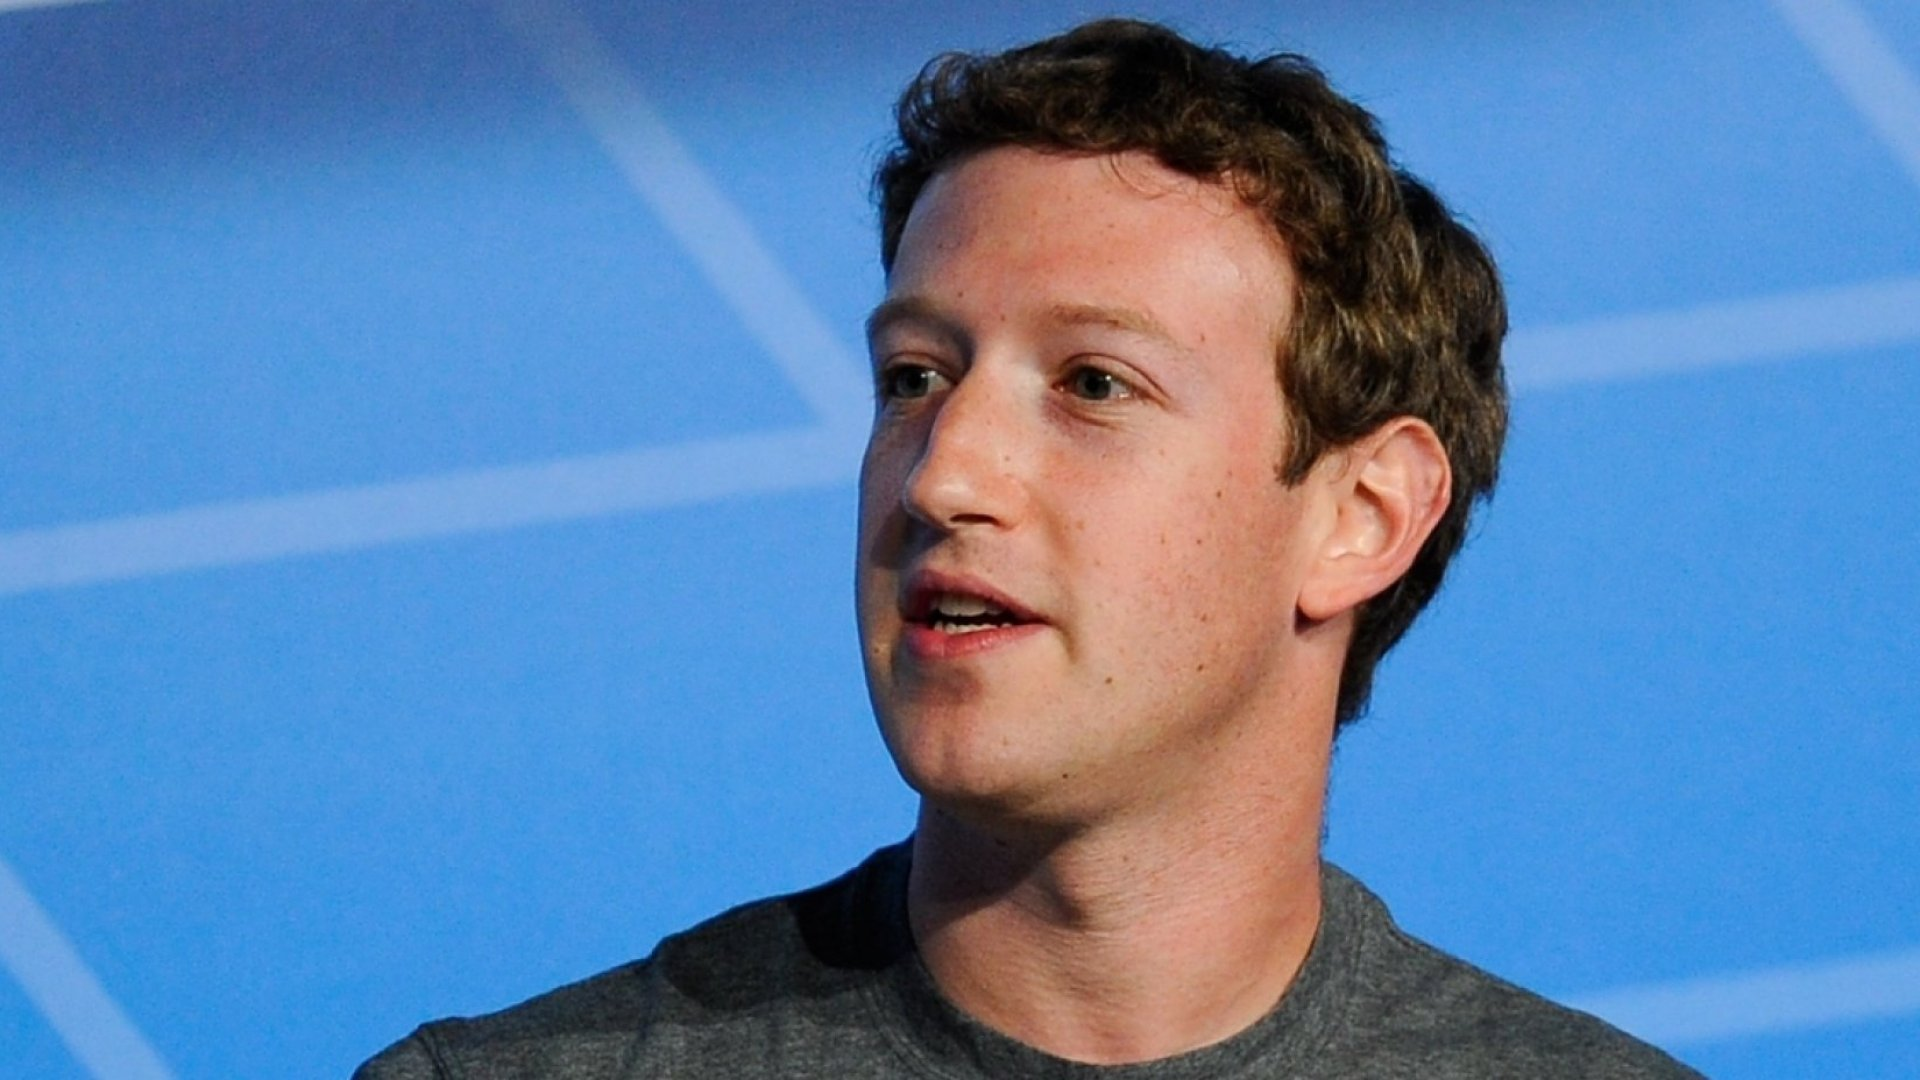 Mark Zuckerberg: It's No Secret That the Tech Community Has an Issue With Diversity